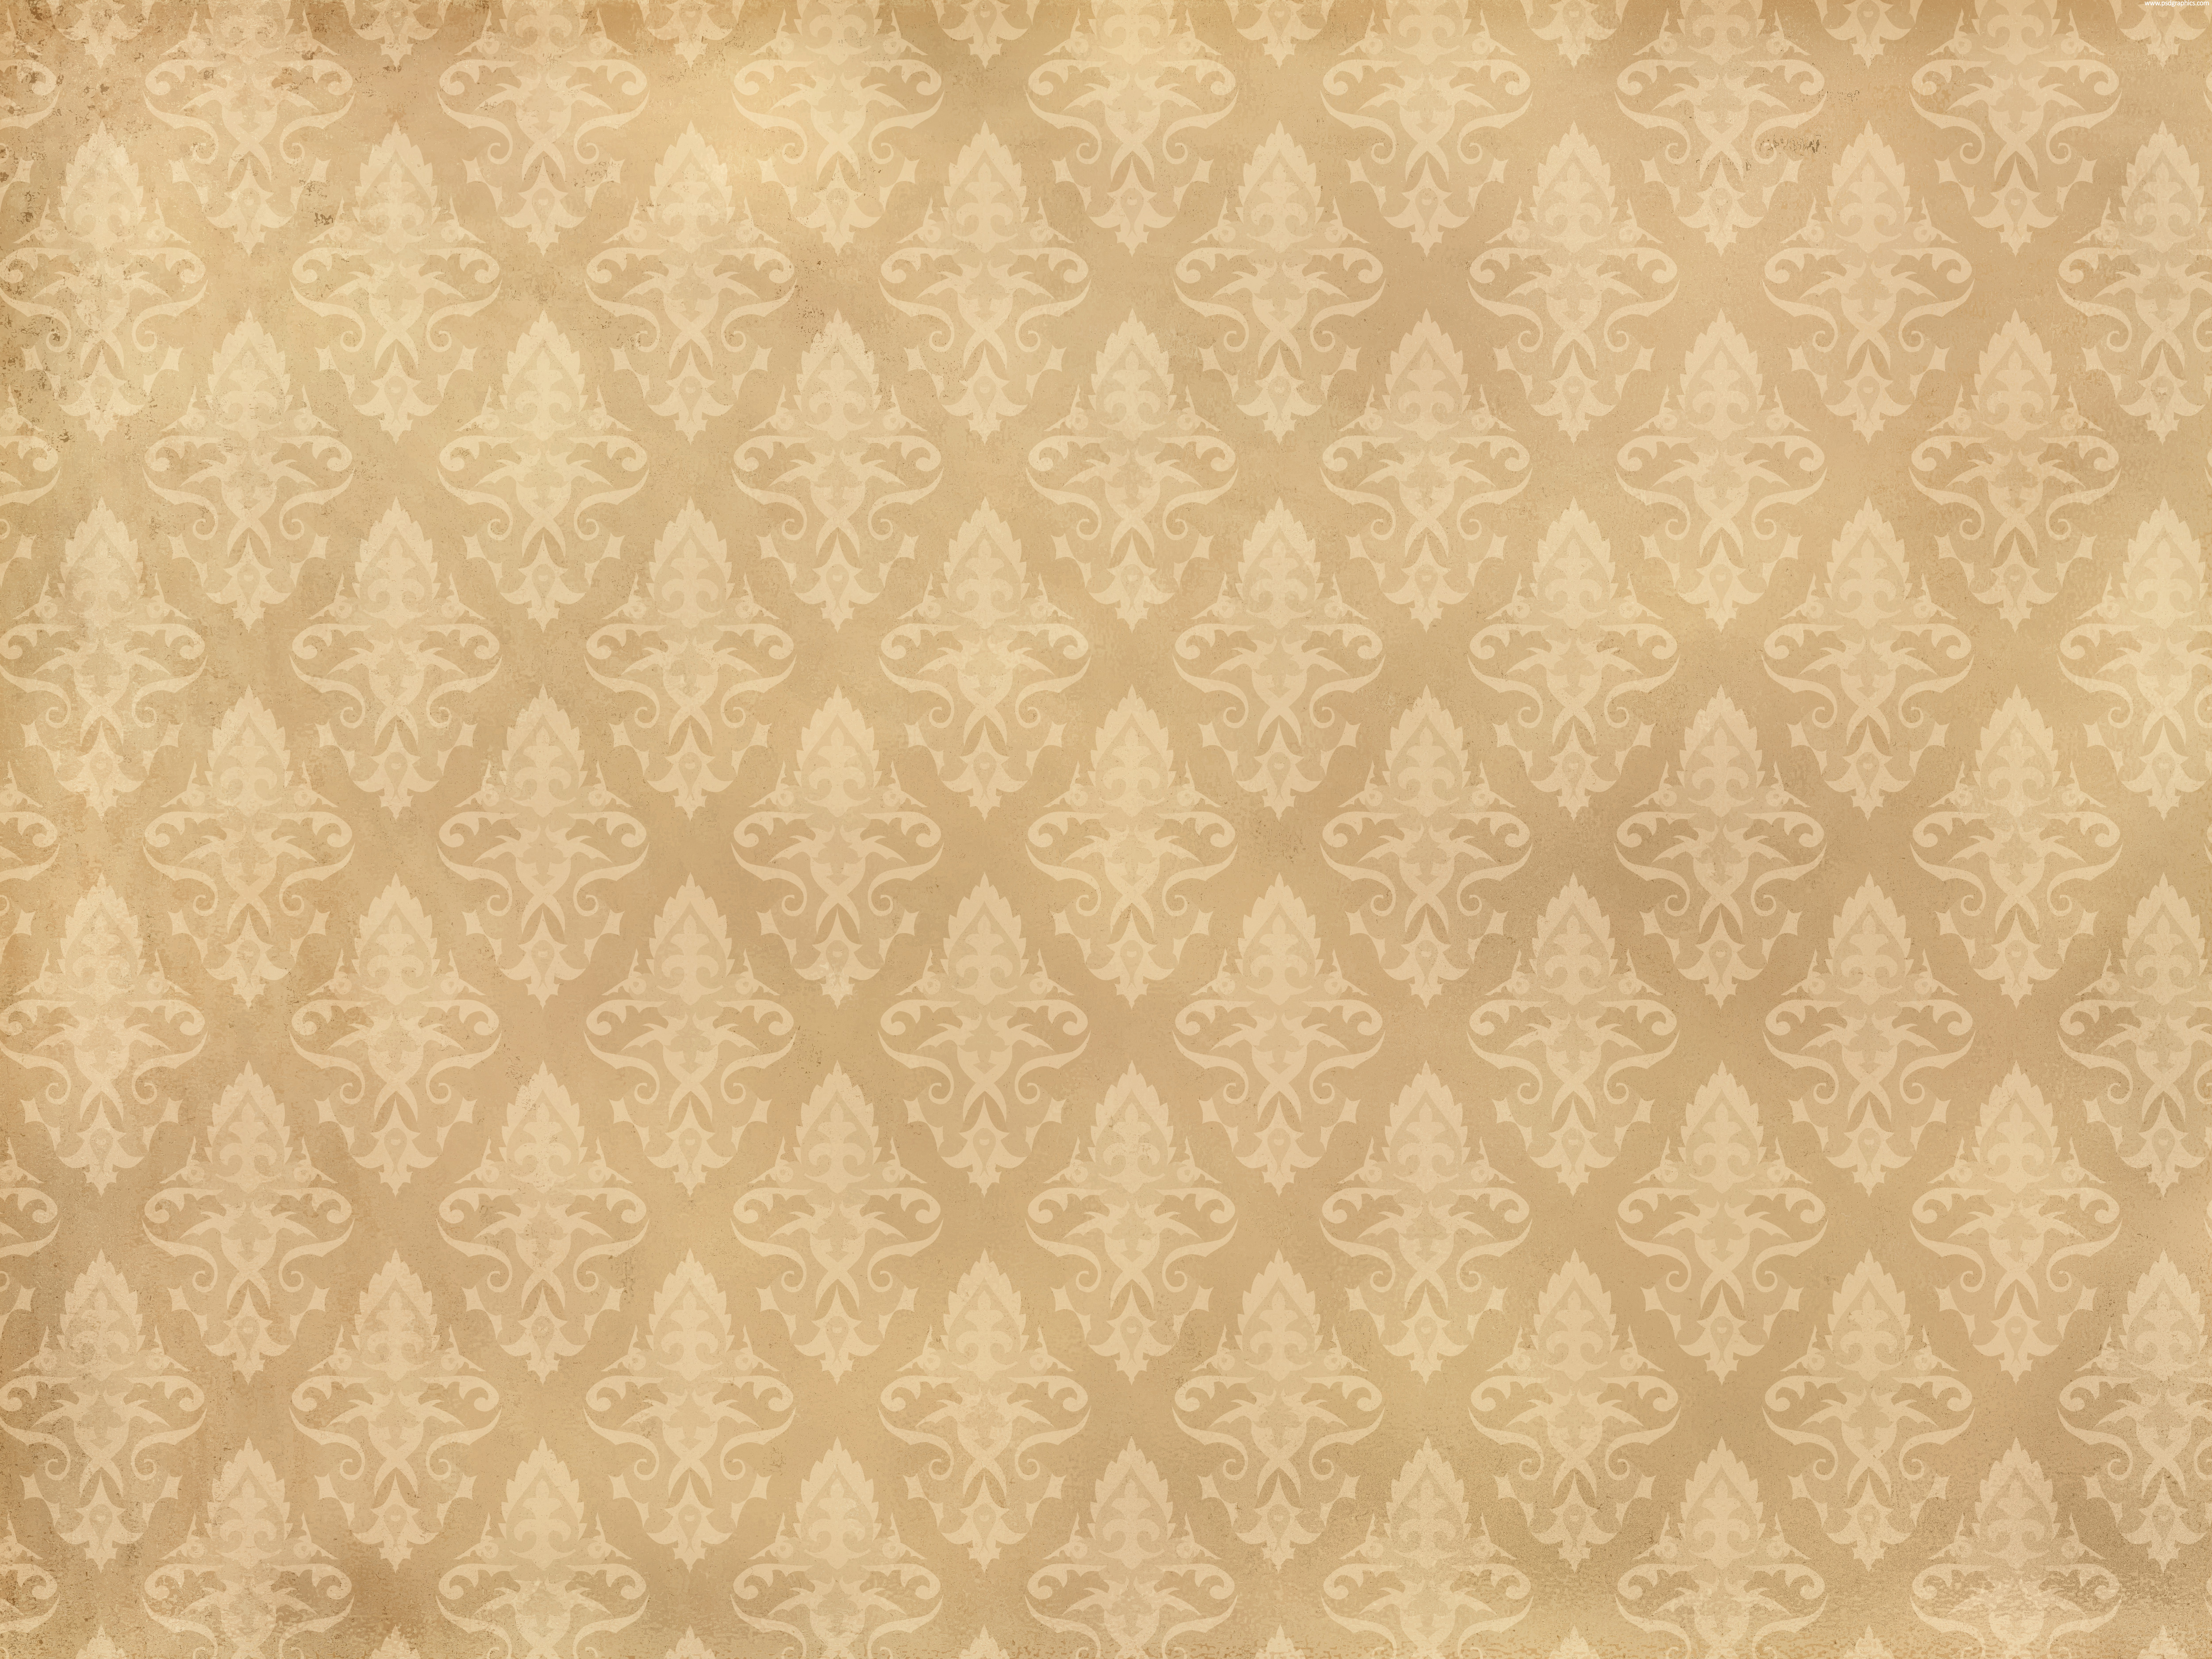 brown antique background antique halftone pattern light brown floral 5000x3750